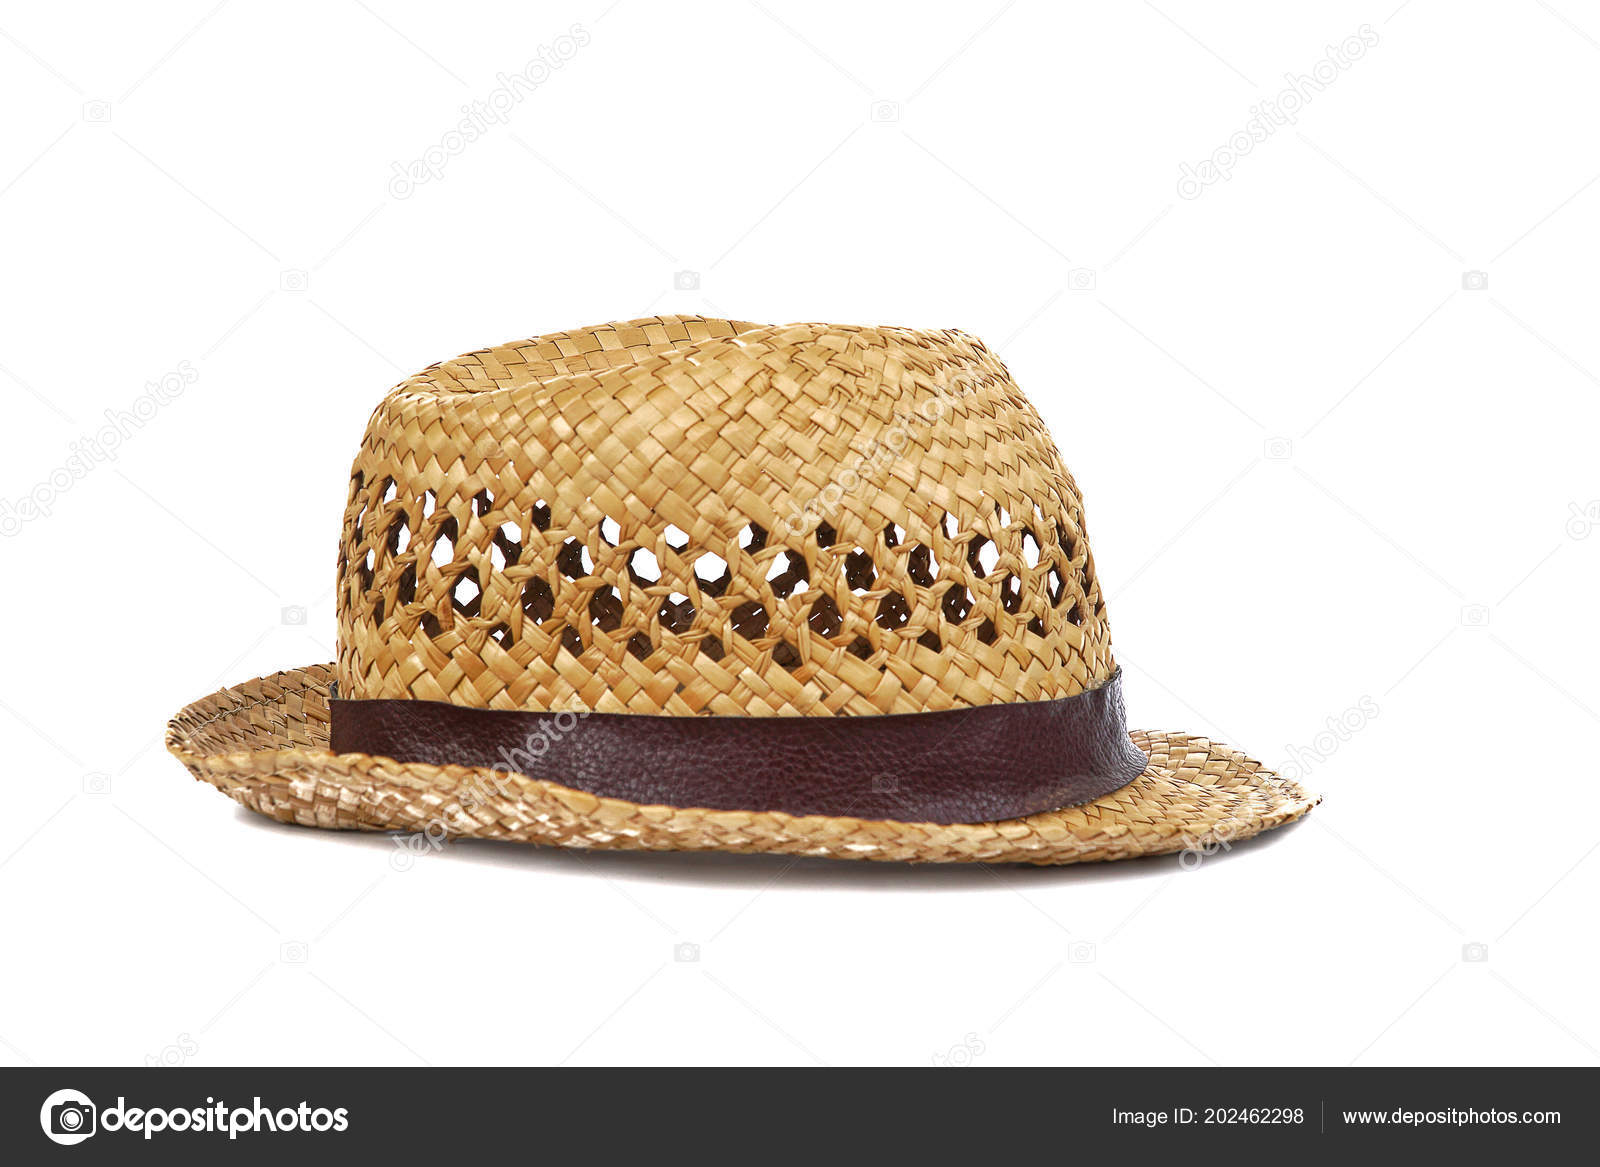 cfde5ab3 Summer beige straw hat isolated on white background.Close up of handcraft weave  wide brim hat made from reed,bamboo,rattan.Decoration with ribbon band on  ...